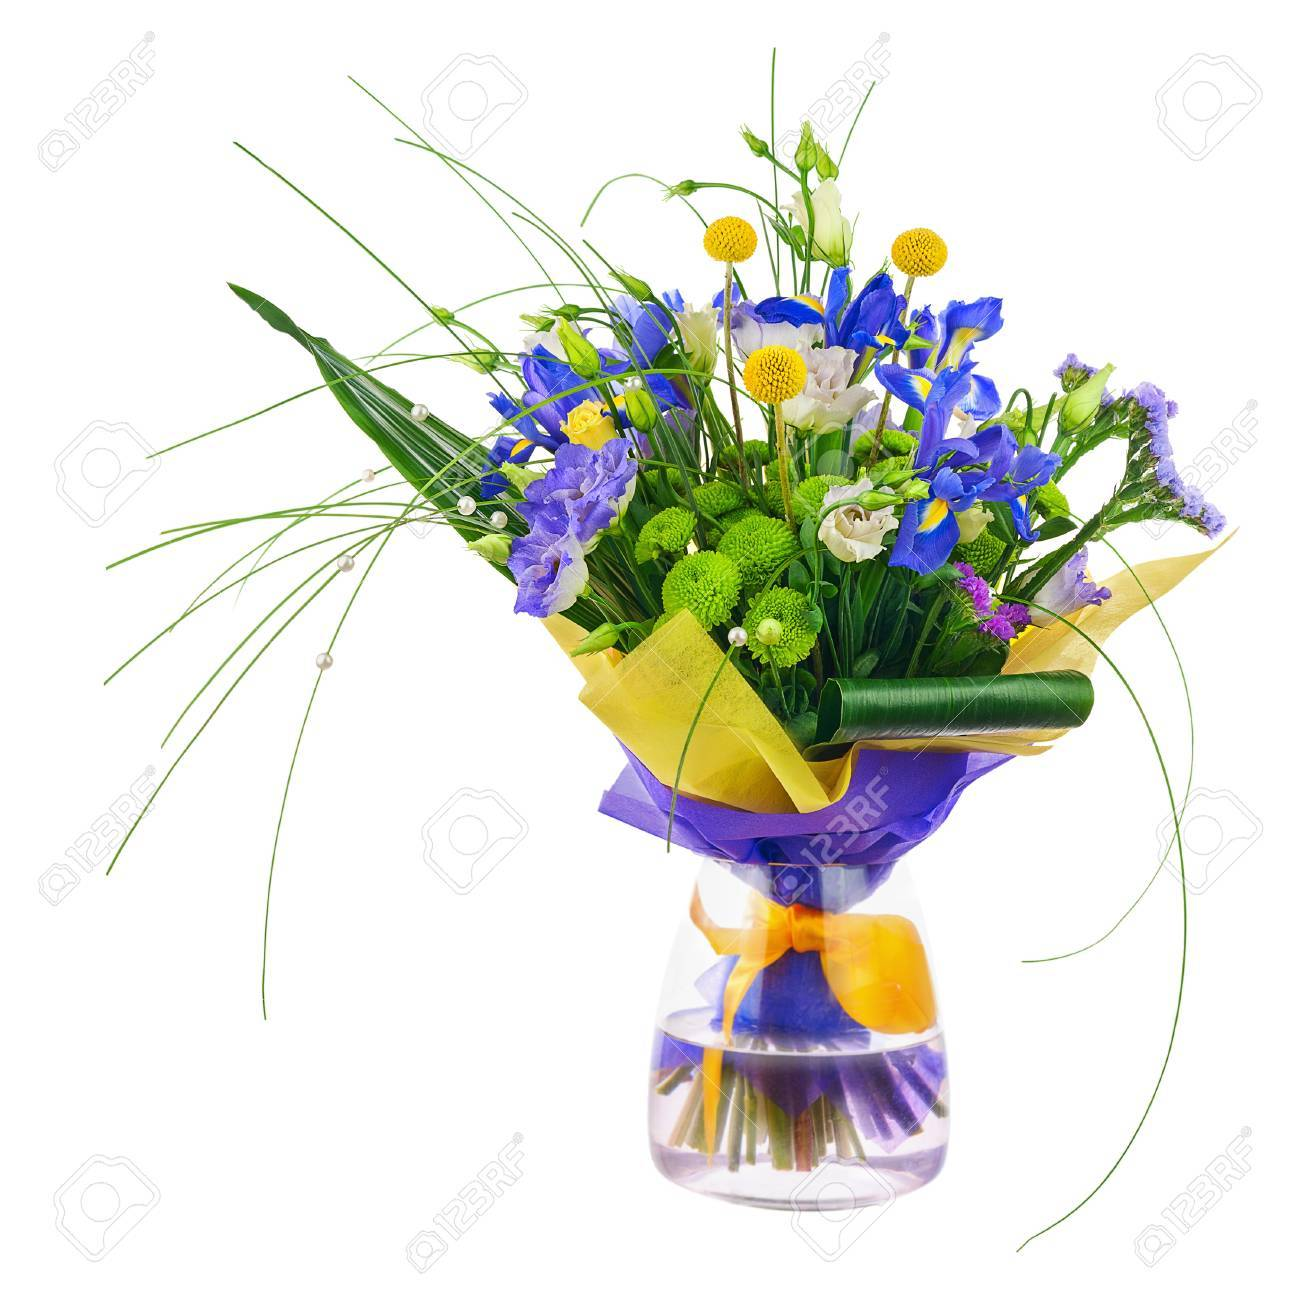 Flower bouquet from roses green carnation iris and statice stock flower bouquet from roses green carnation iris and statice flowers in glass vase isolated mightylinksfo